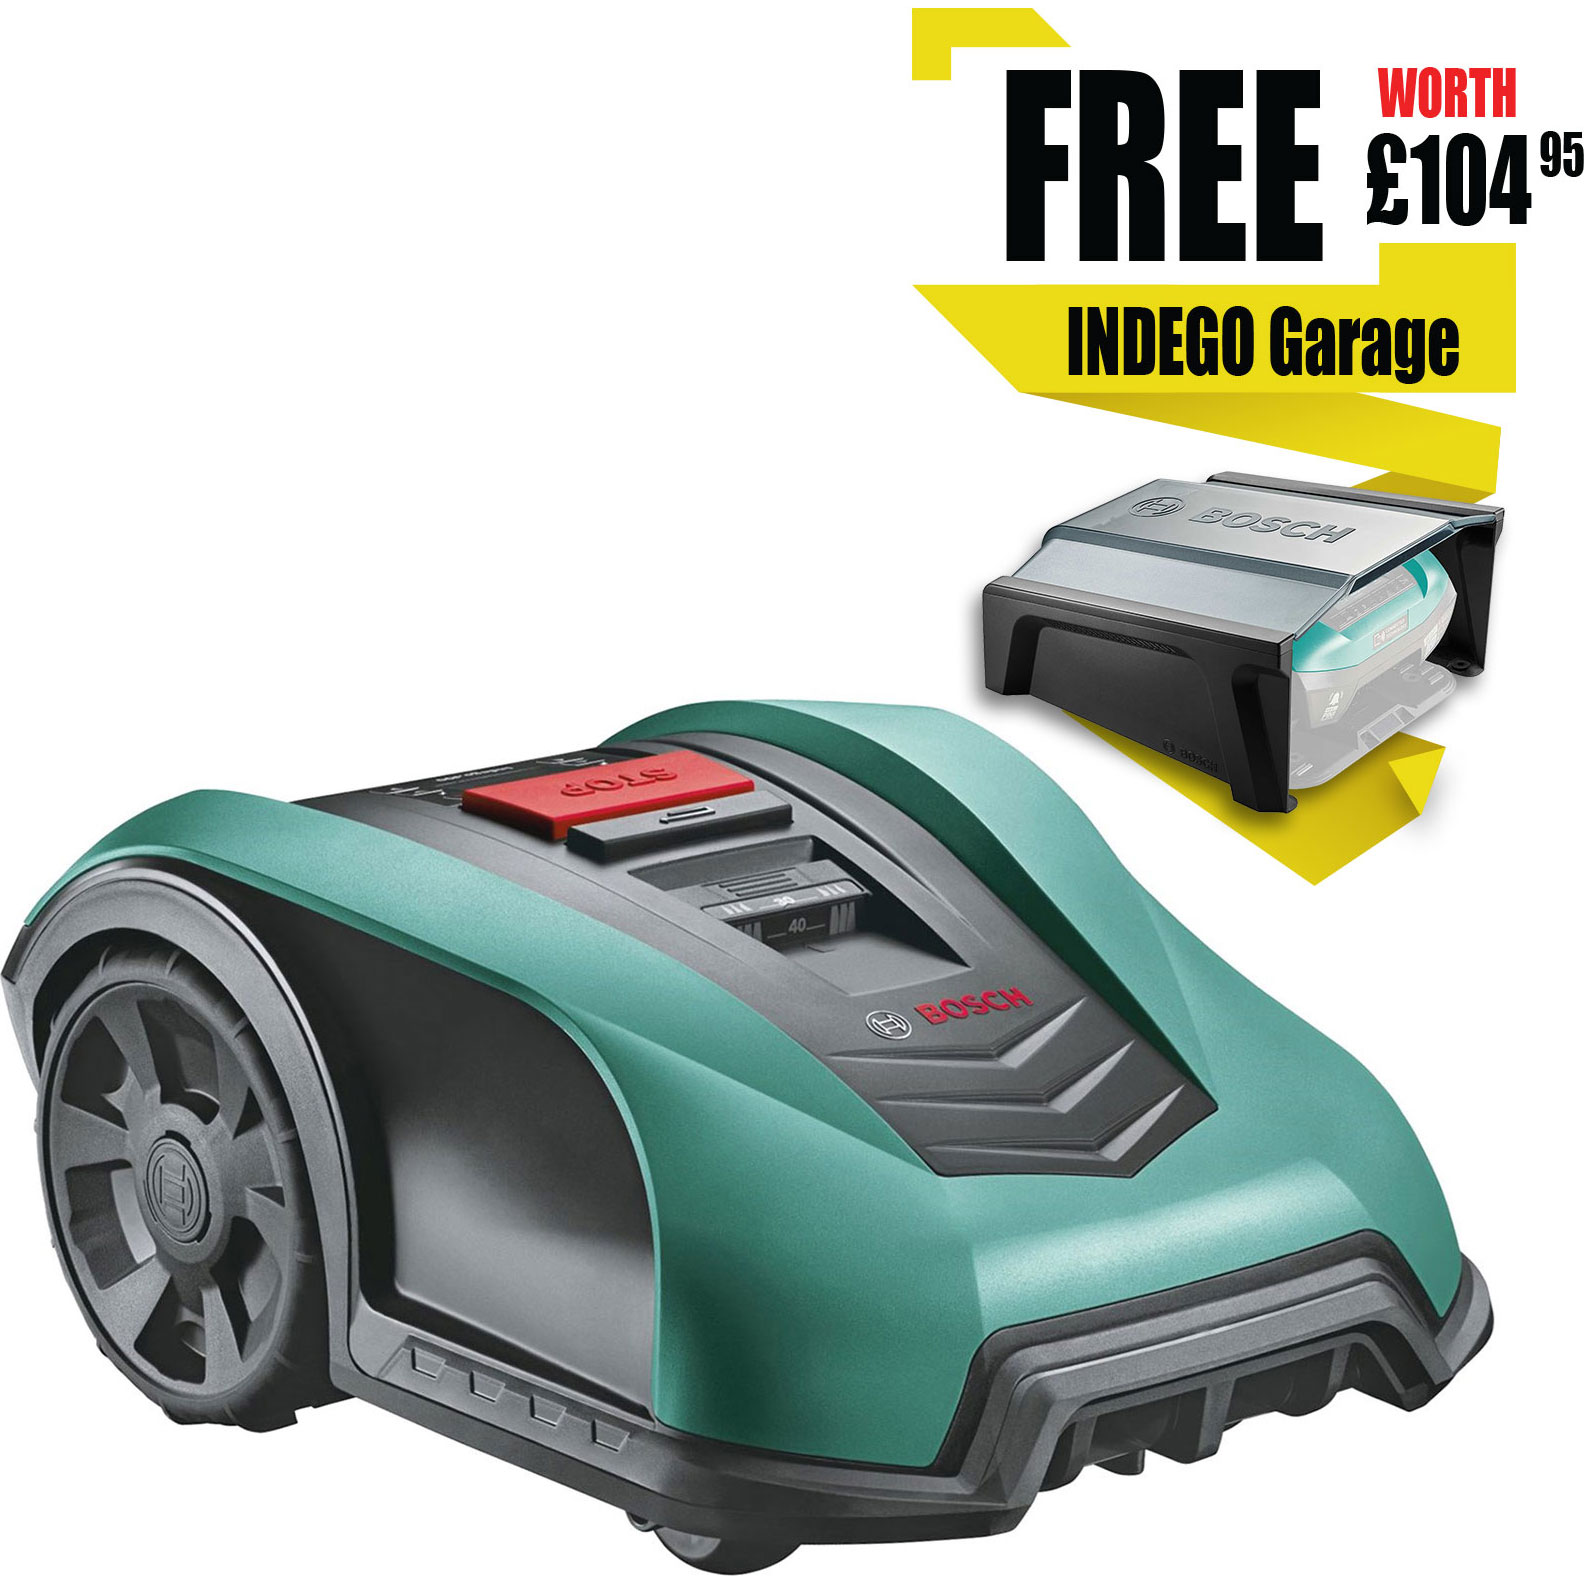 Image of Bosch INDEGO 350 CONNECT 18v Cordless Robotic Lawnmower 190mm 1 x 2.5ah Integrated Li-ion Charger